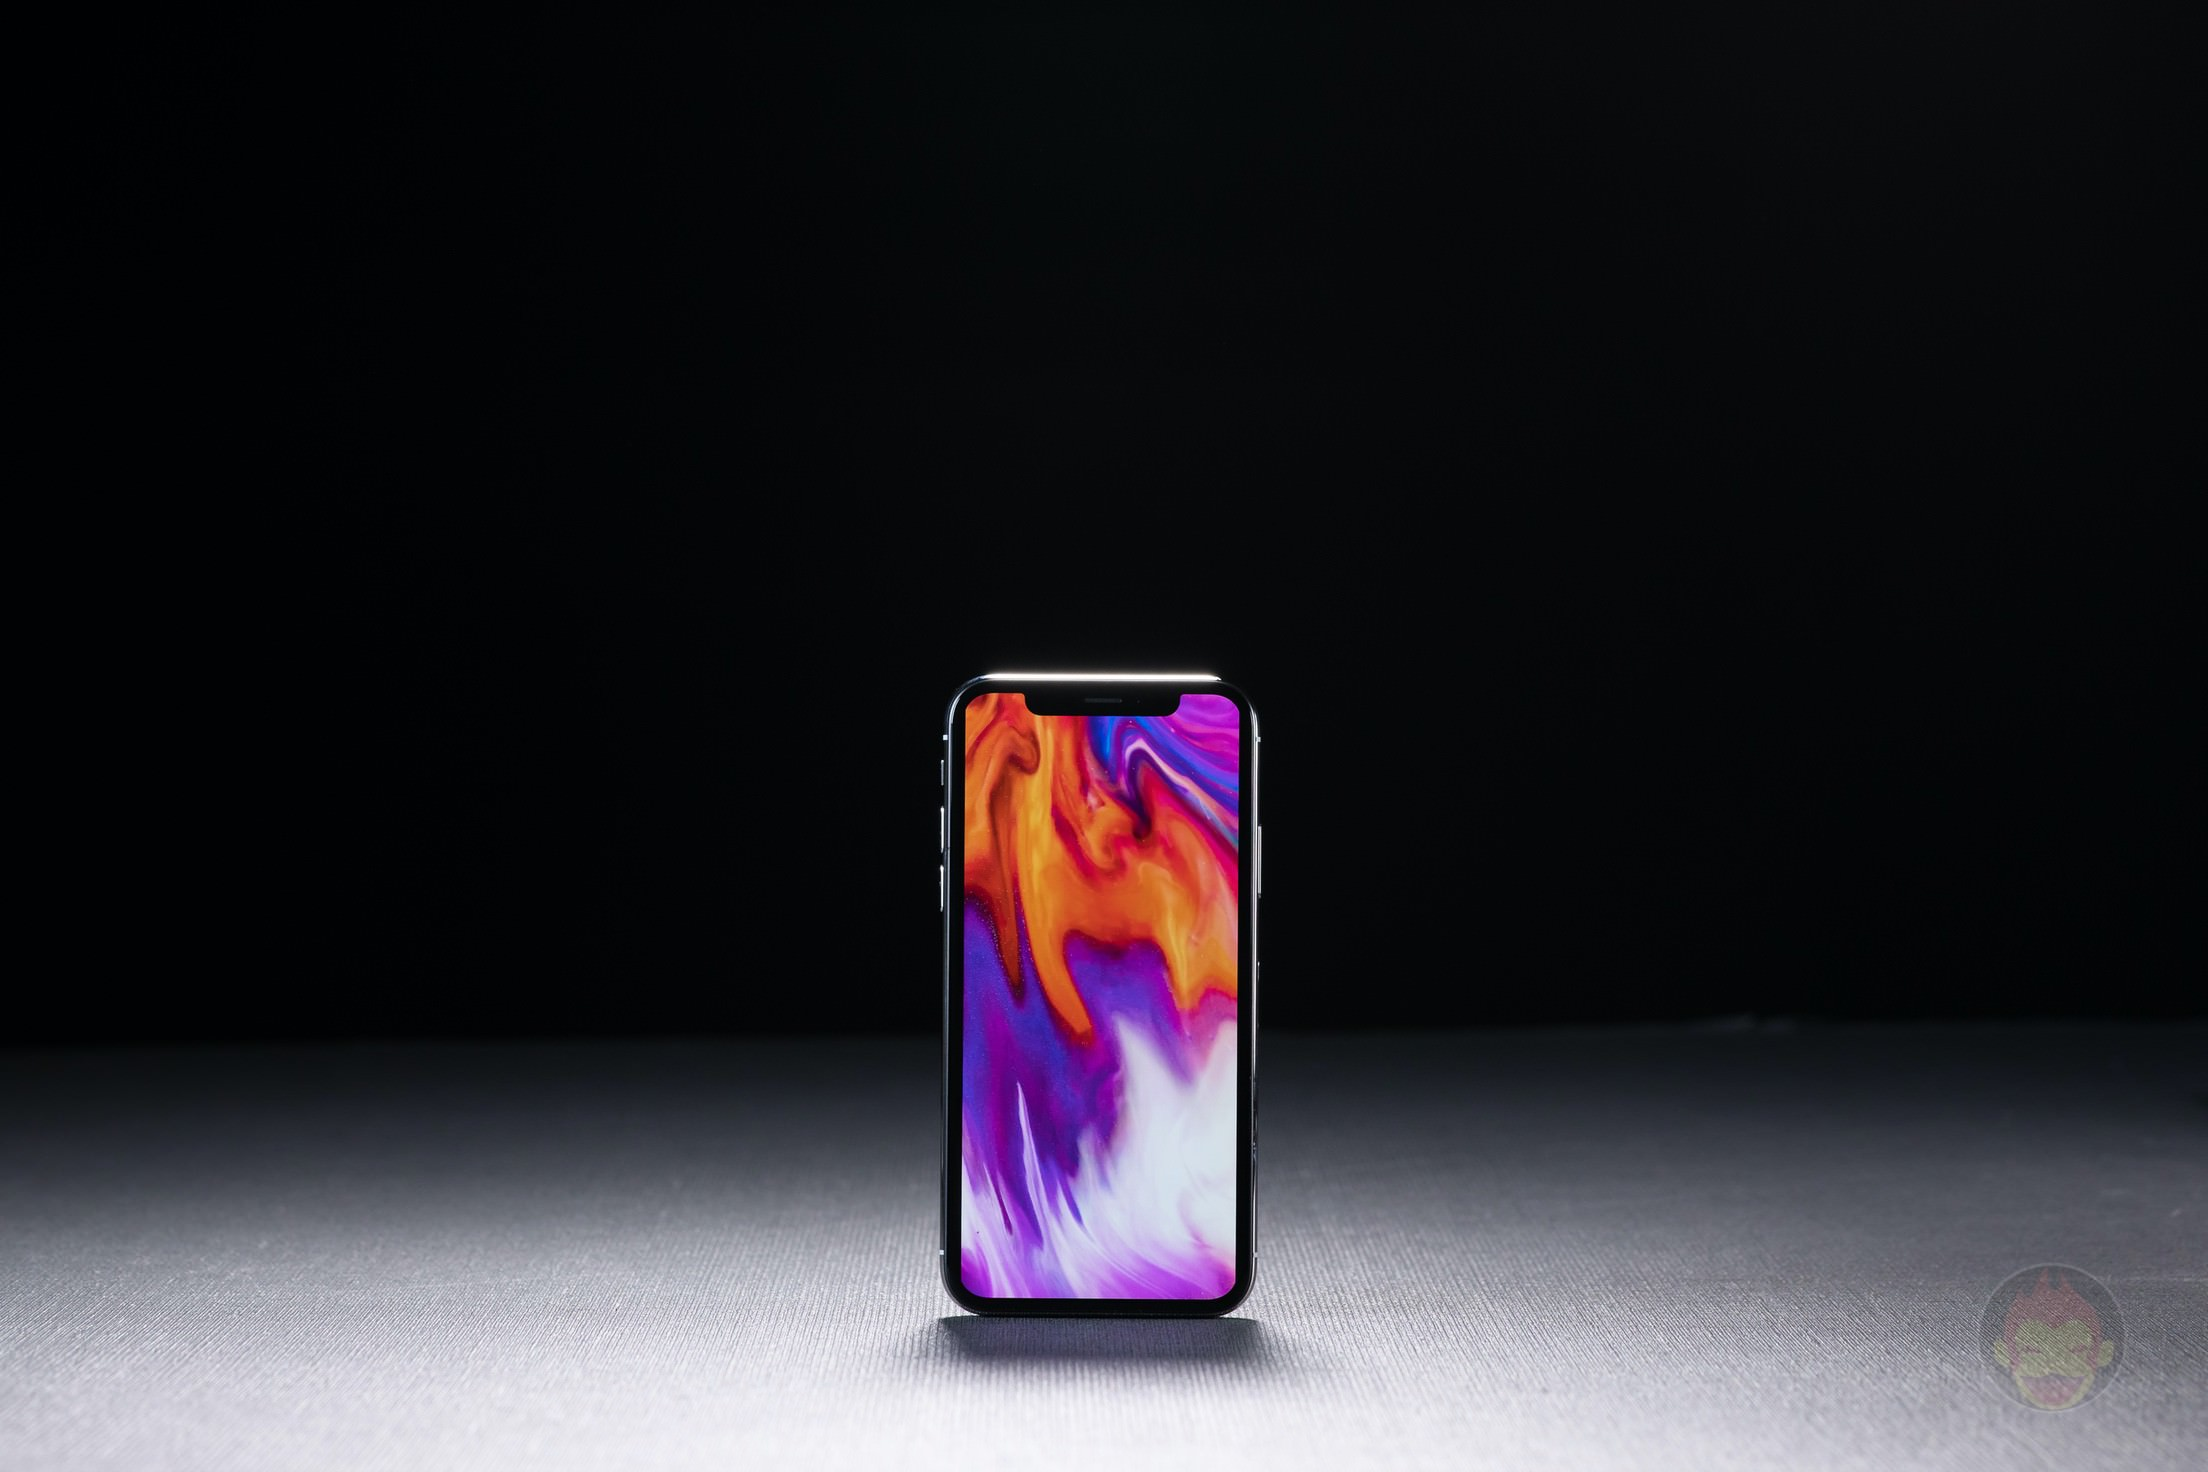 iPhone-X-Silver-Review-33.jpg